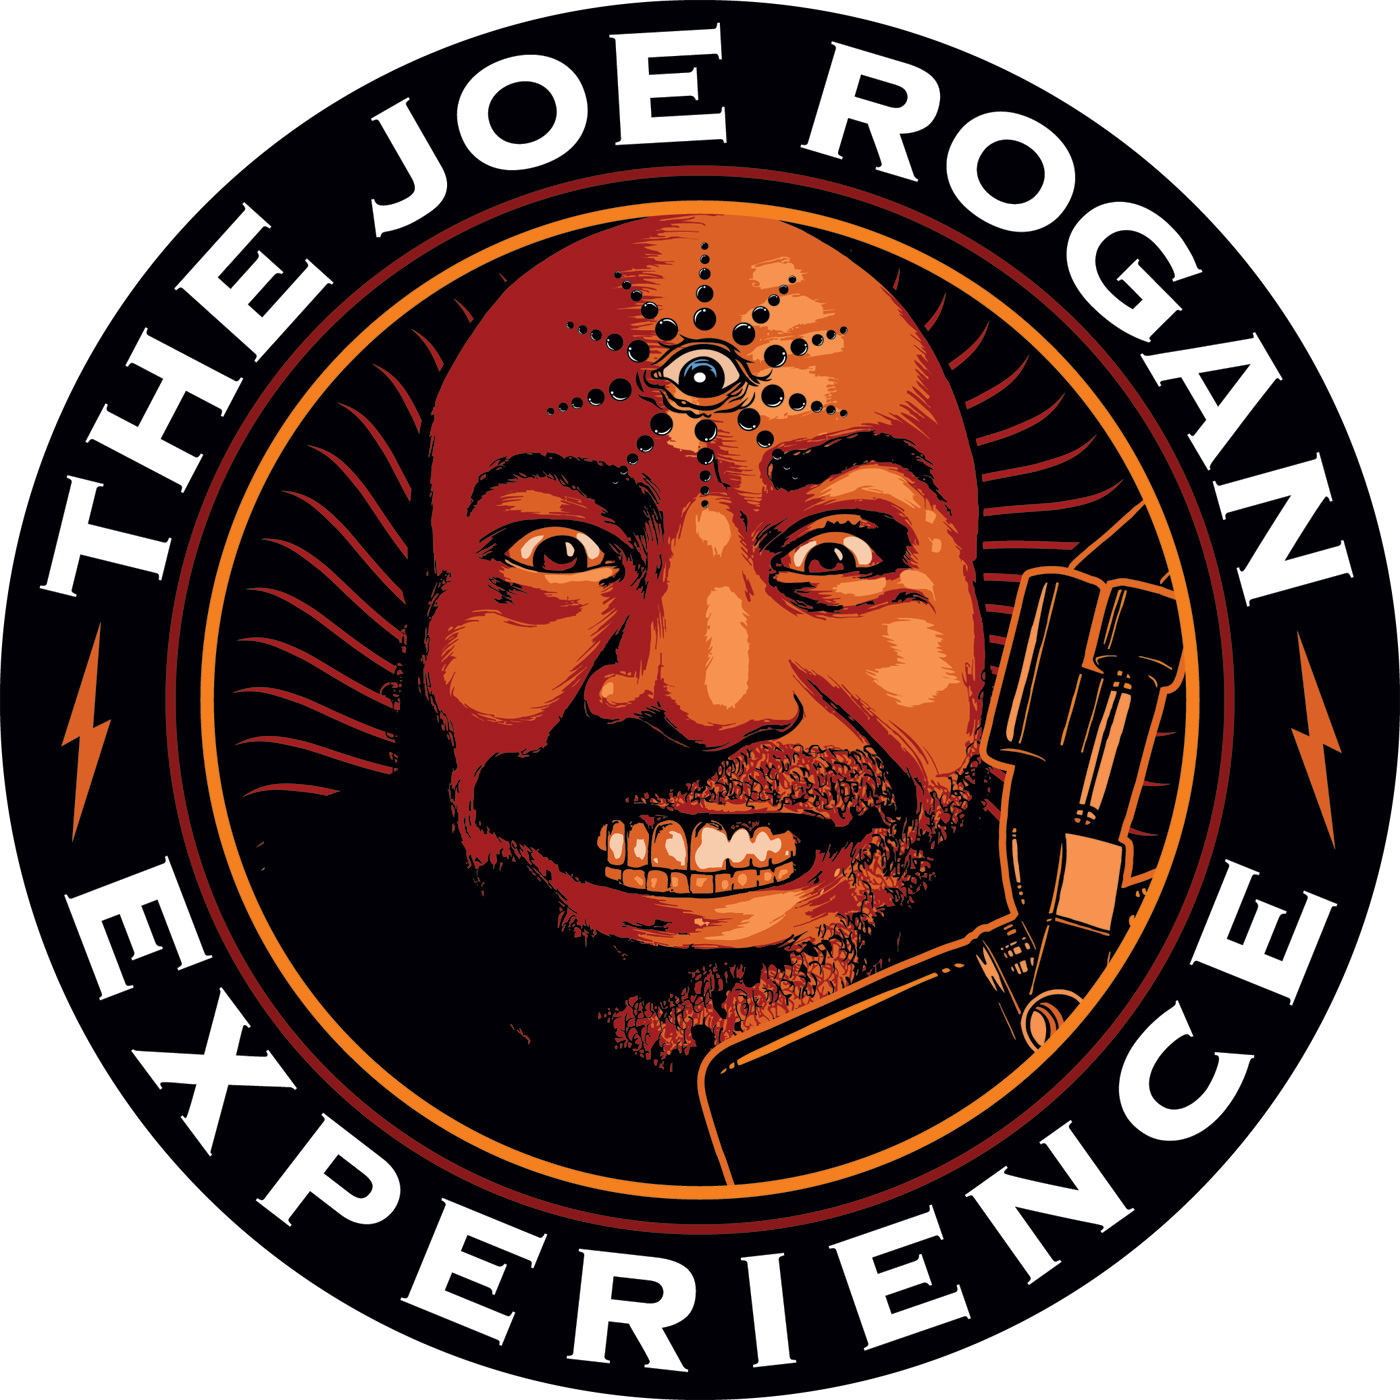 The Joe Rogan Experience PODCAST #147 - Duncan Trussell, Brian Redban